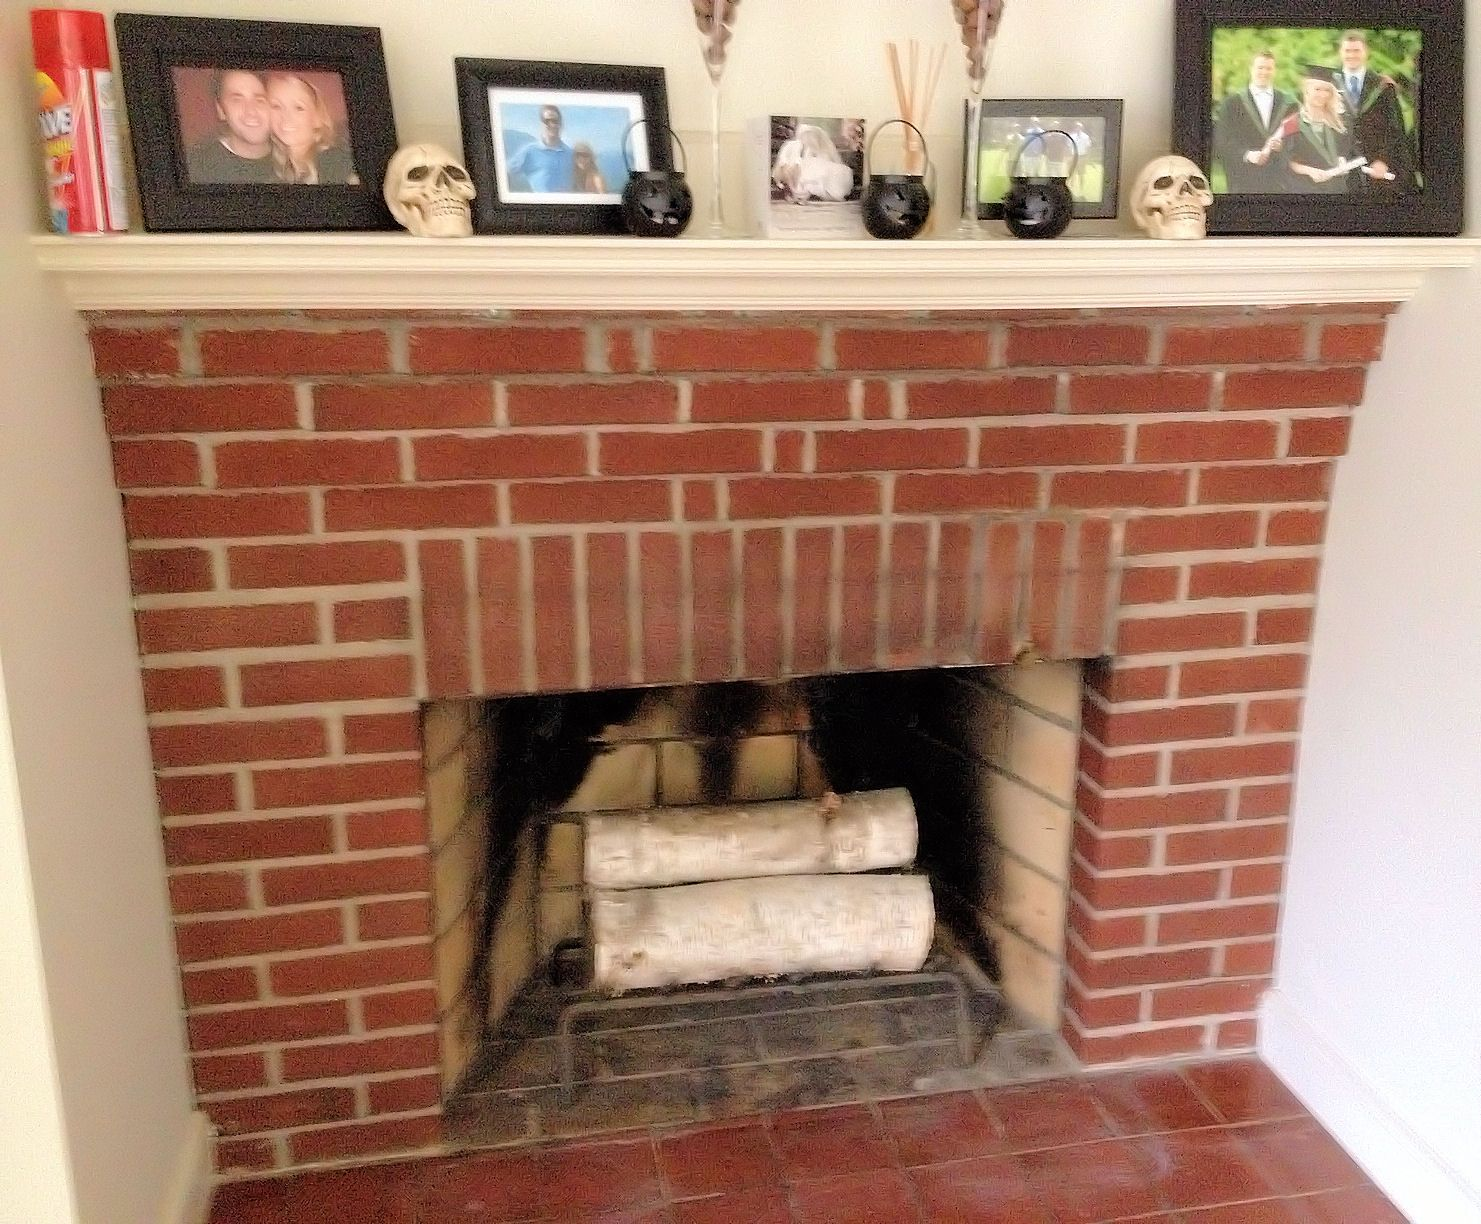 Red brick fireplace tile hearth tiles decor pinterest brick fireplace bricks and hearth - Brick fireplace surrounds ideas ...